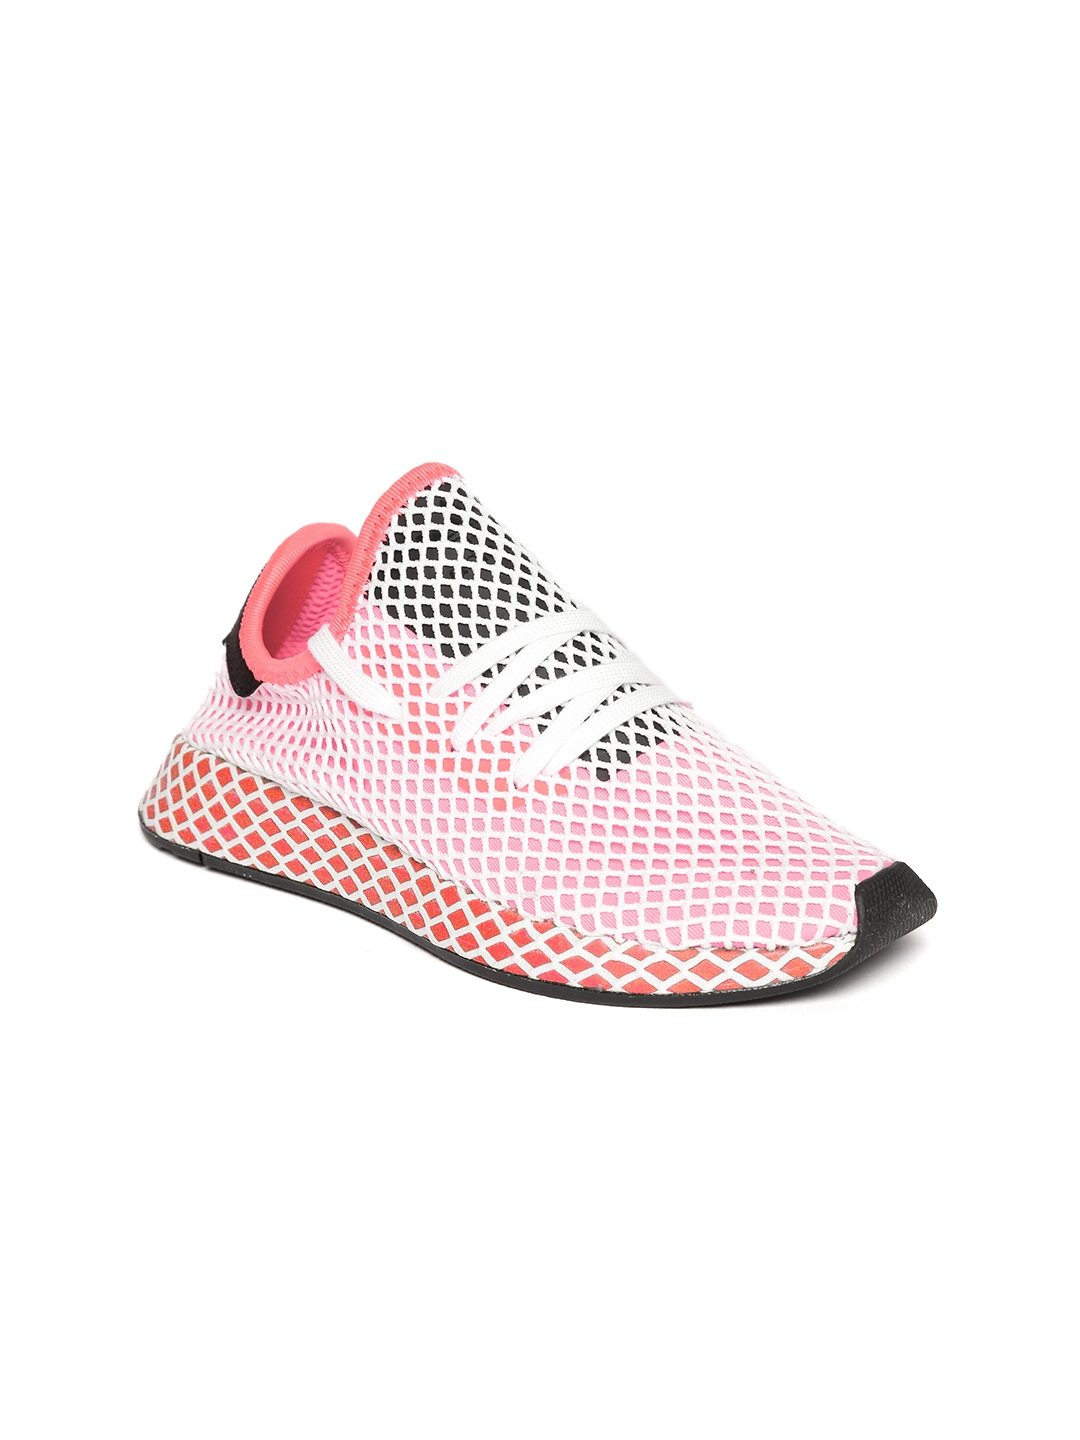 67554ae3e64 ADIDAS Originals Women Pink   White Deerupt Runner Patterned Sneakers